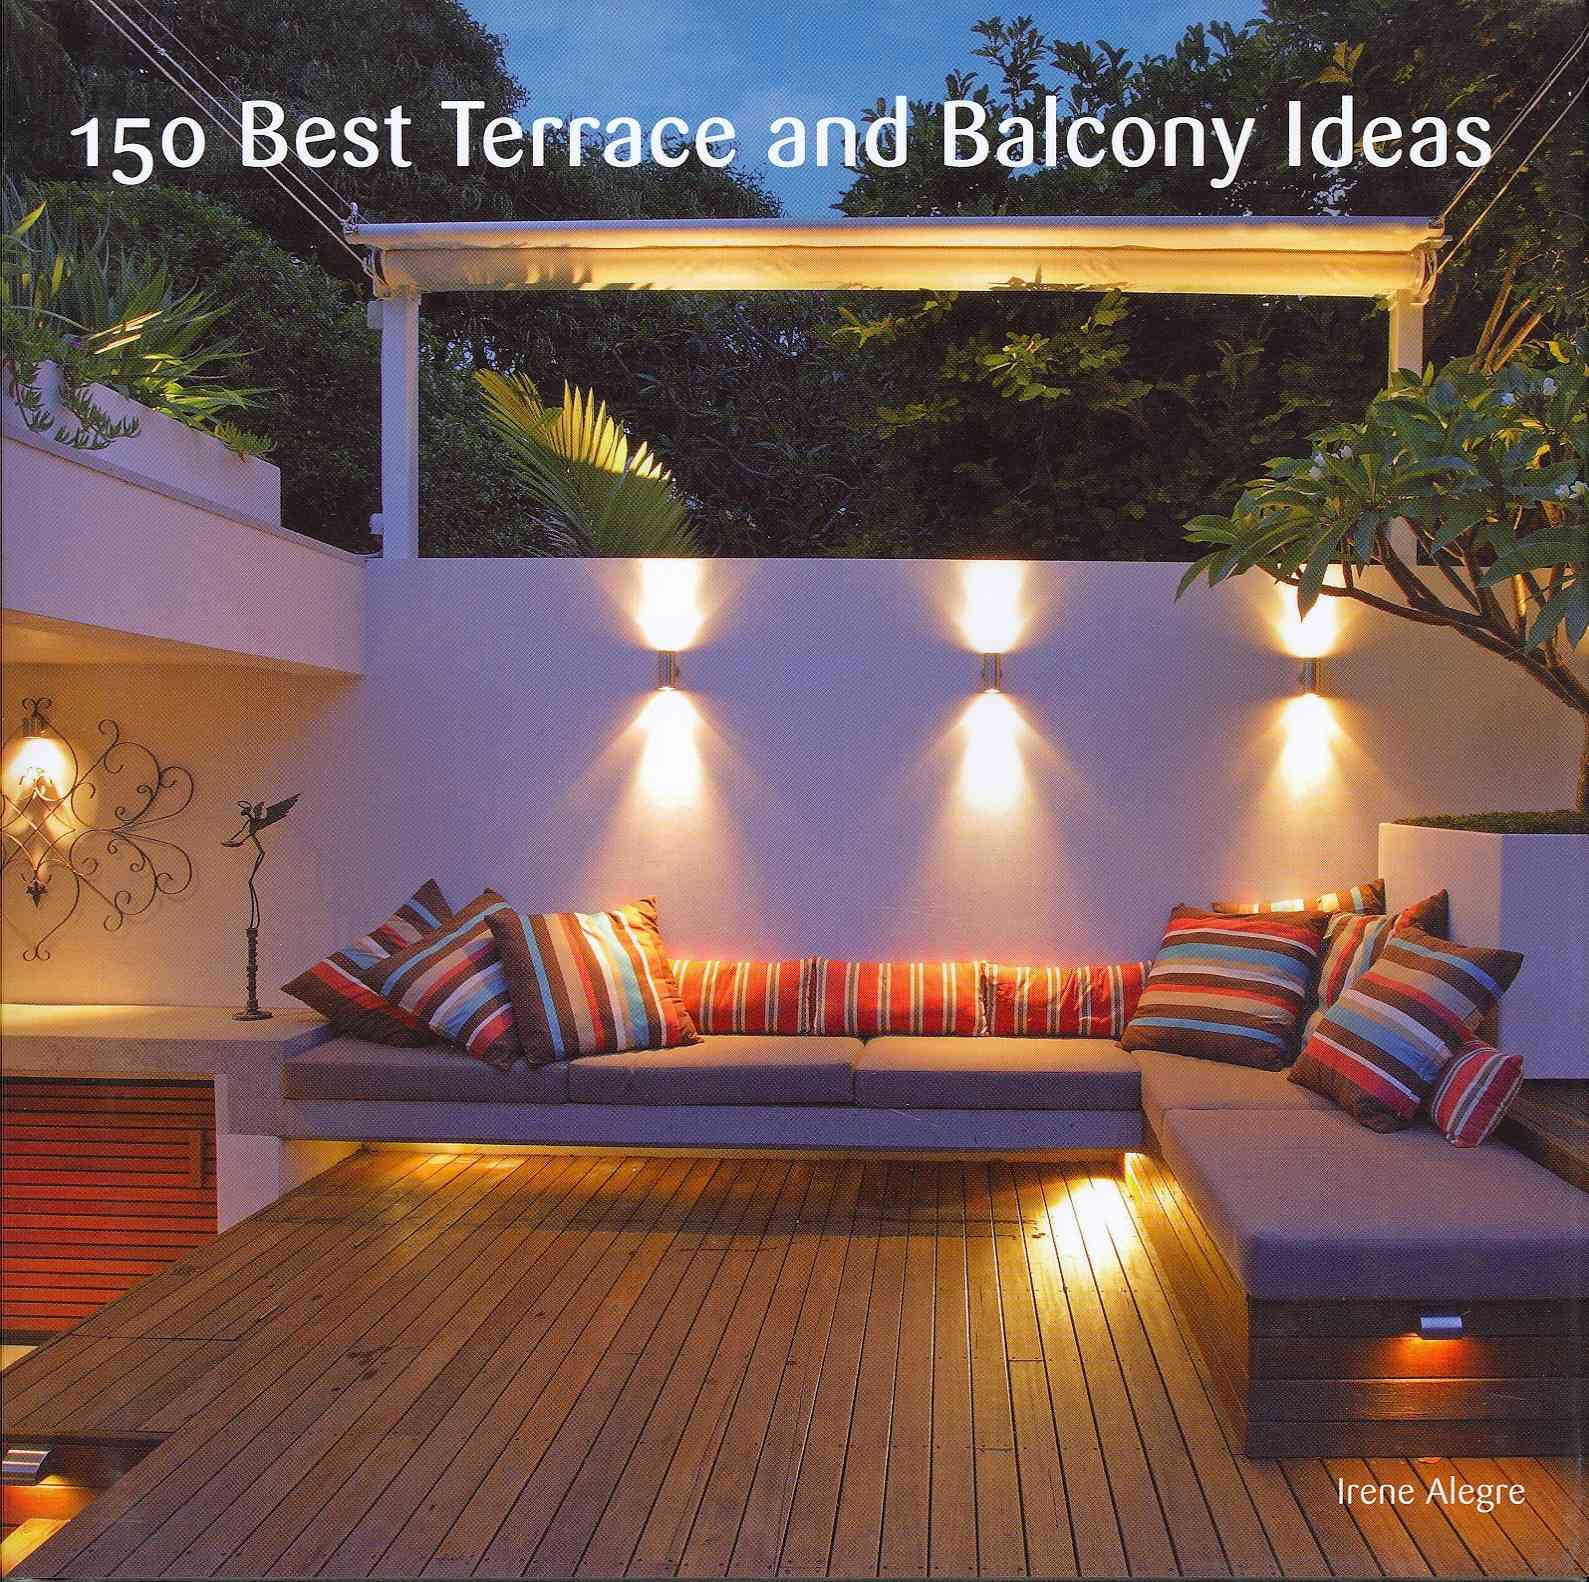 150 Best Terrace and Balcony Ideas By Alegre, Irene